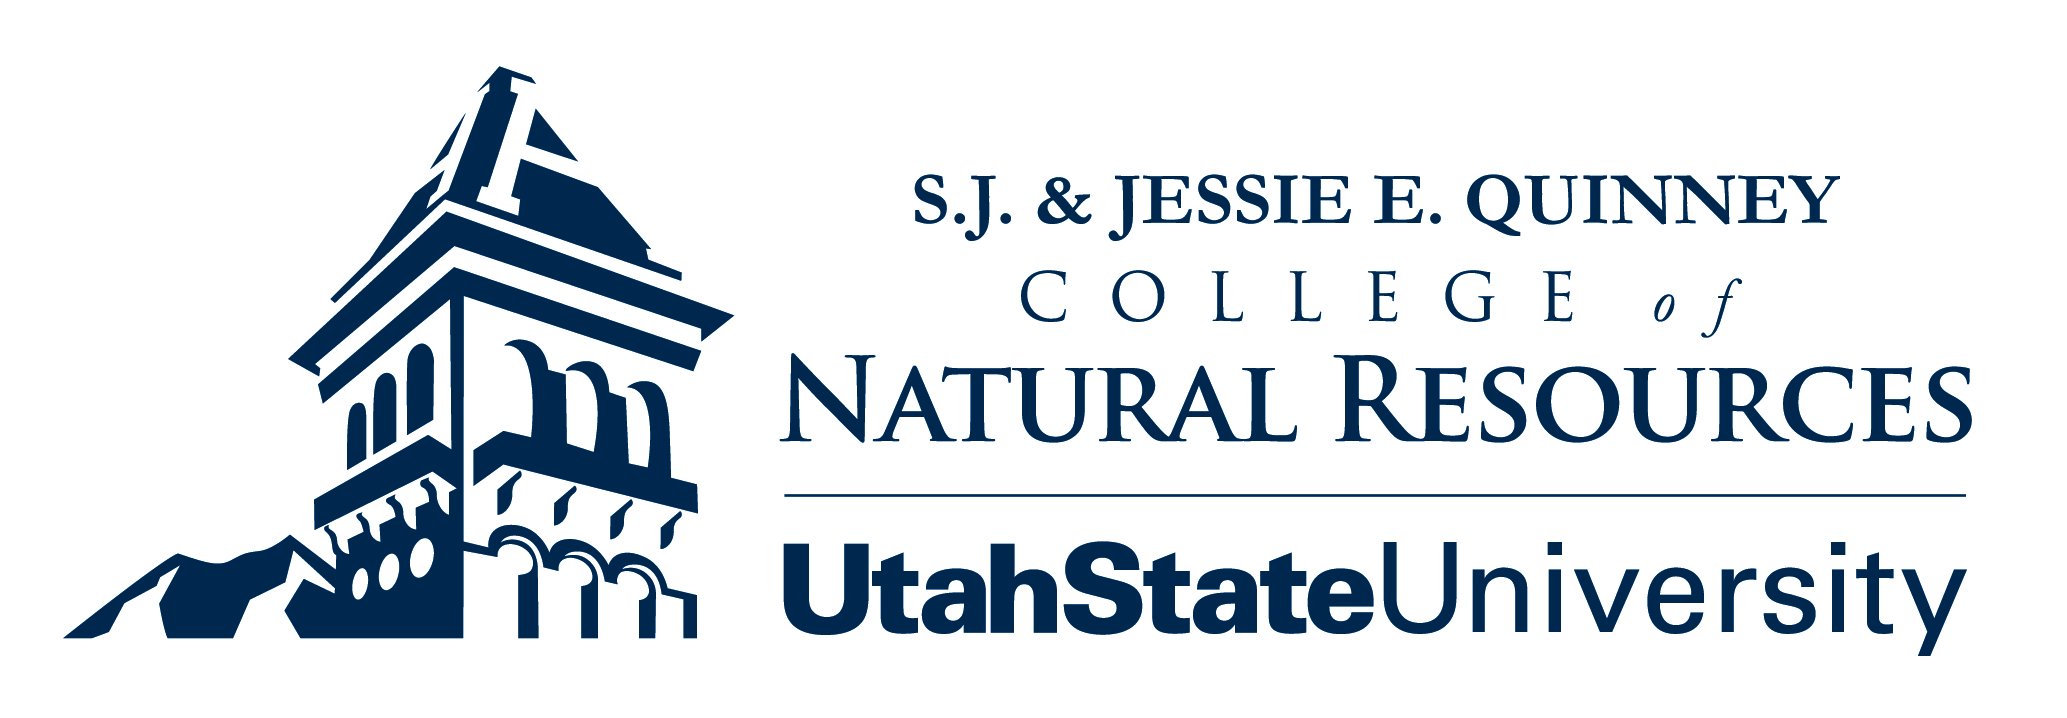 Utah State University/College of Natural Resources